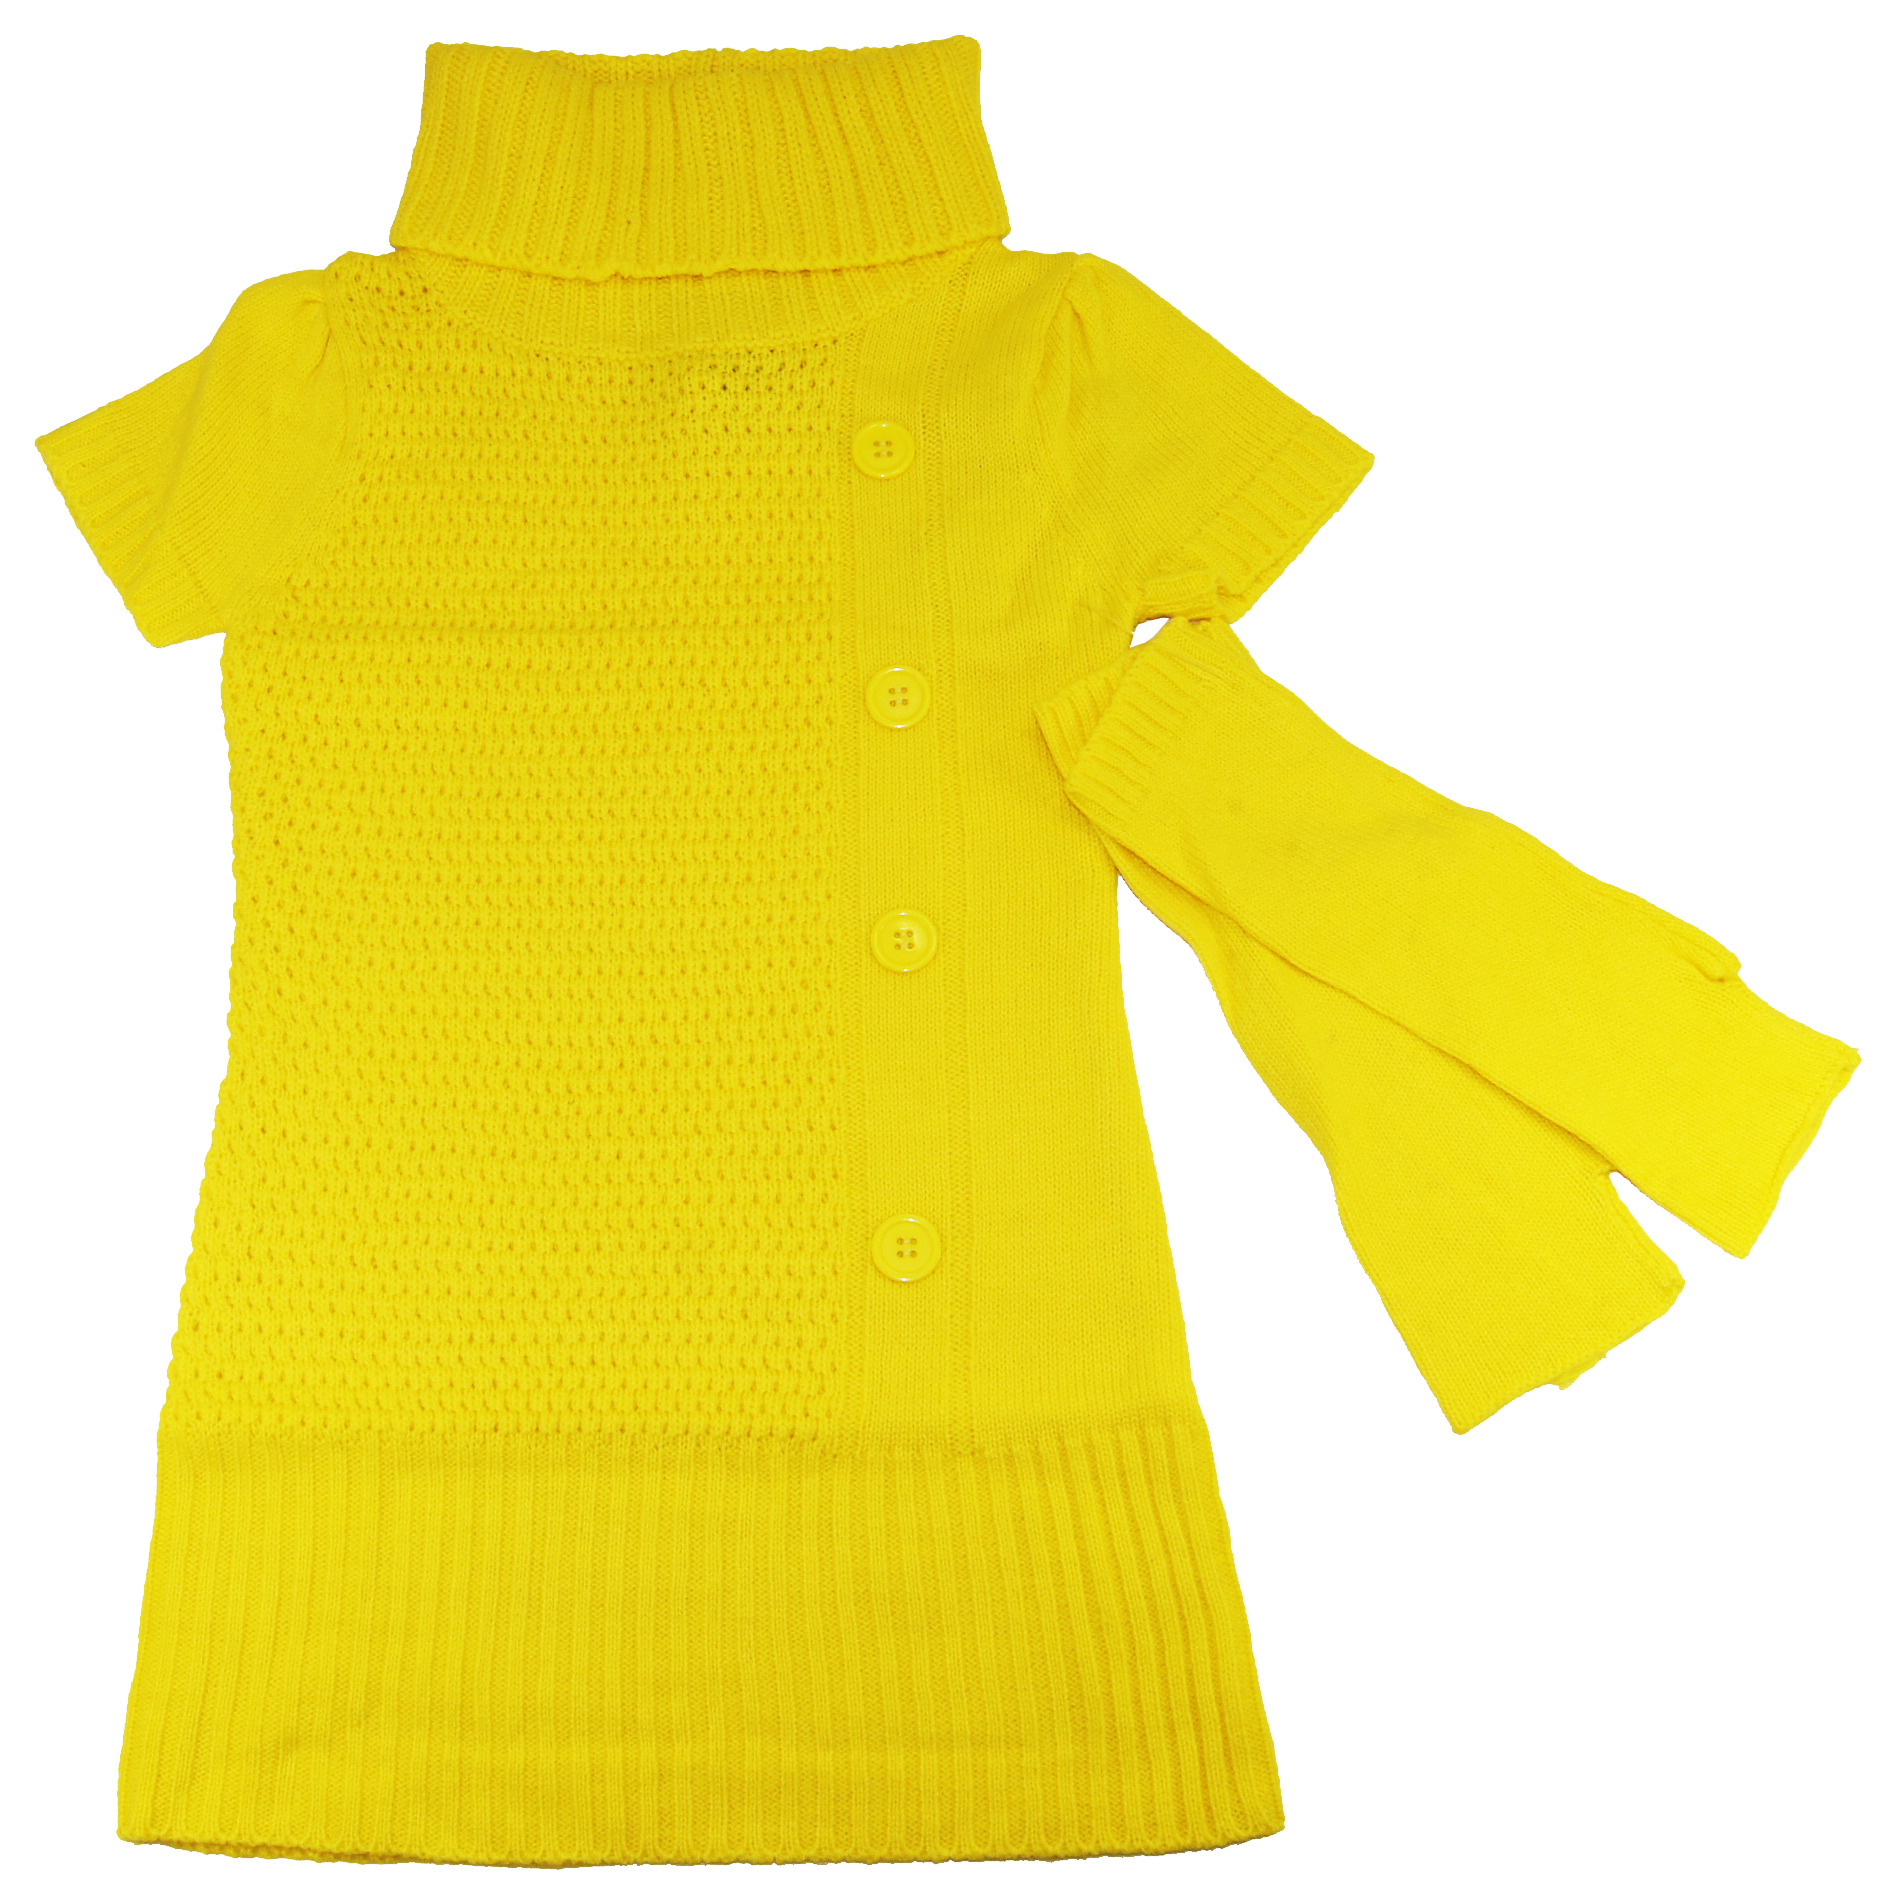 Dollhouse Girls 4-6X Yellow Turtleneck Short Sleeve Dress Sweater Hand Warmers at Sears.com